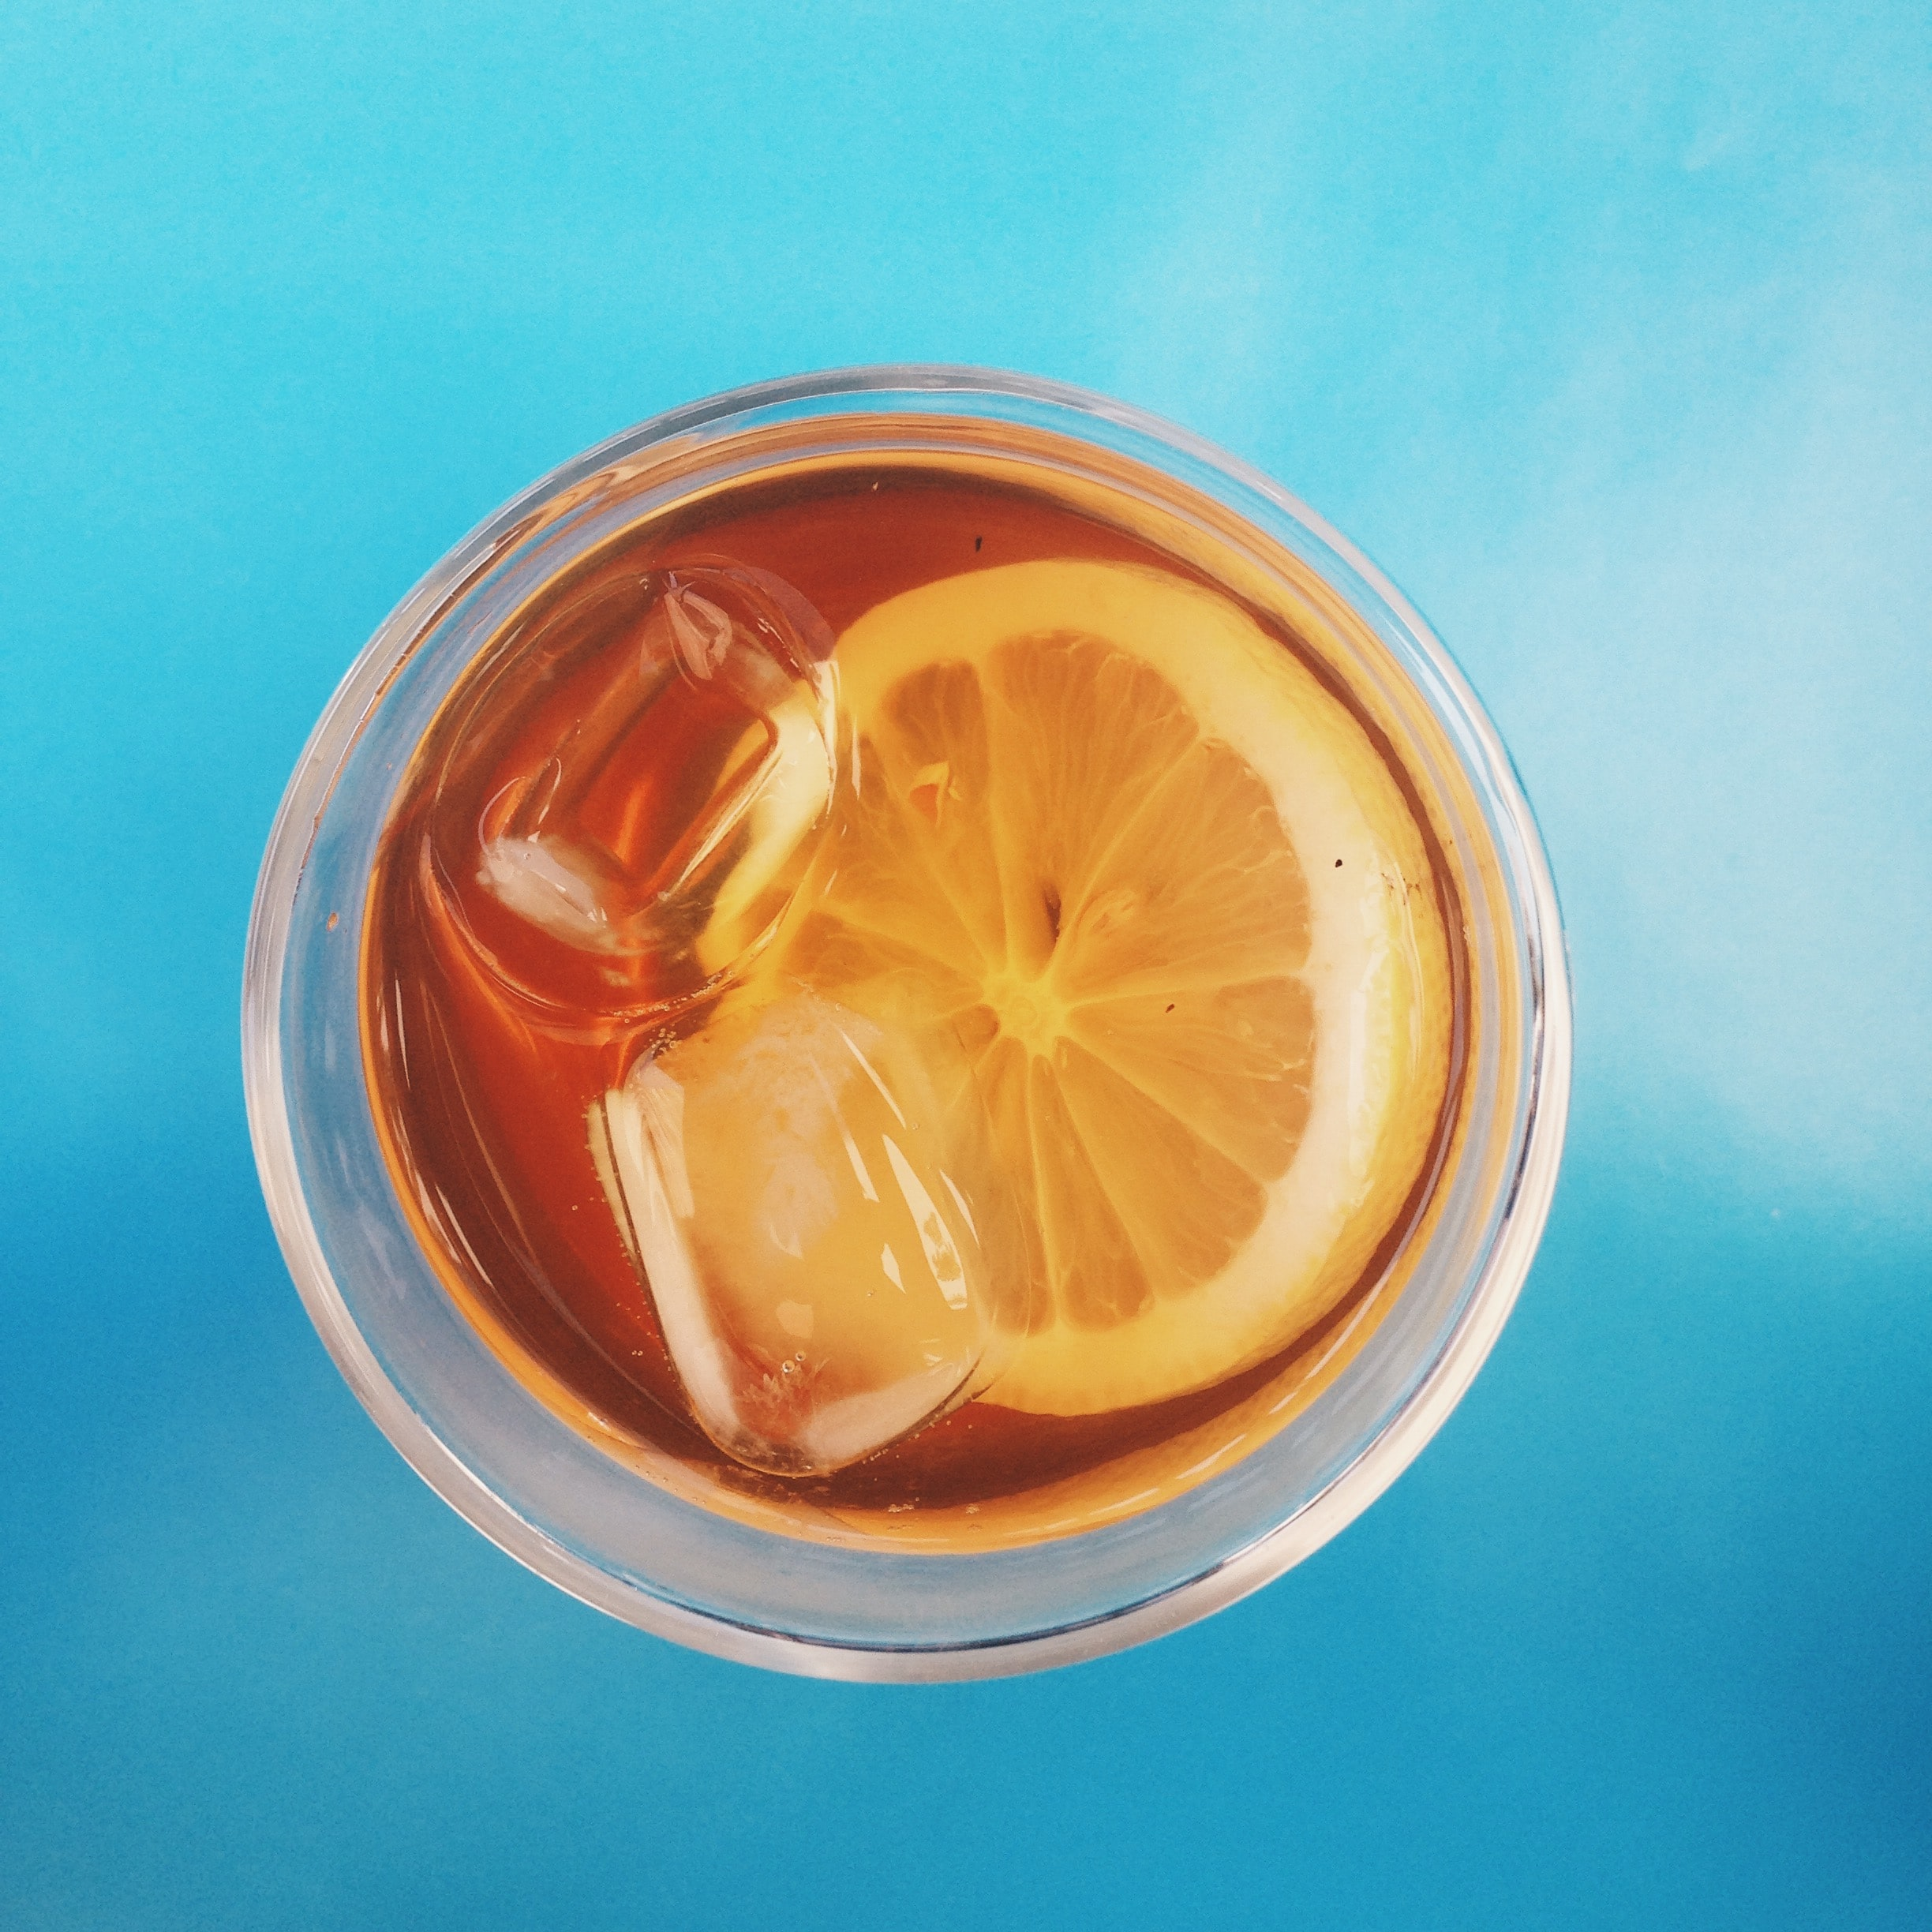 Top view of an ice tea in a glass containing slice of lemon and ice in São Paulo